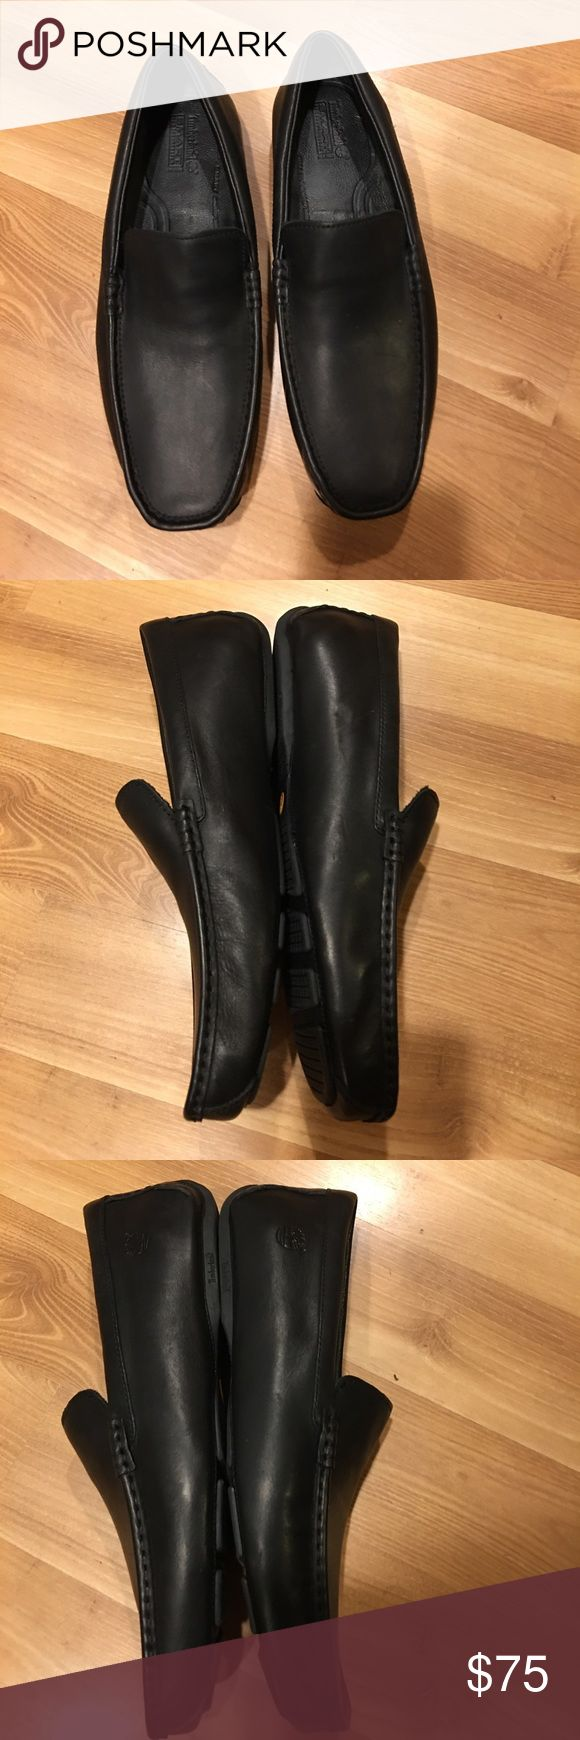 Timberland boat shoes black leather size 10M Shoes are in excellent used , clean inside and out and are ready to wear. Timberland Shoes Loafers & Slip-Ons